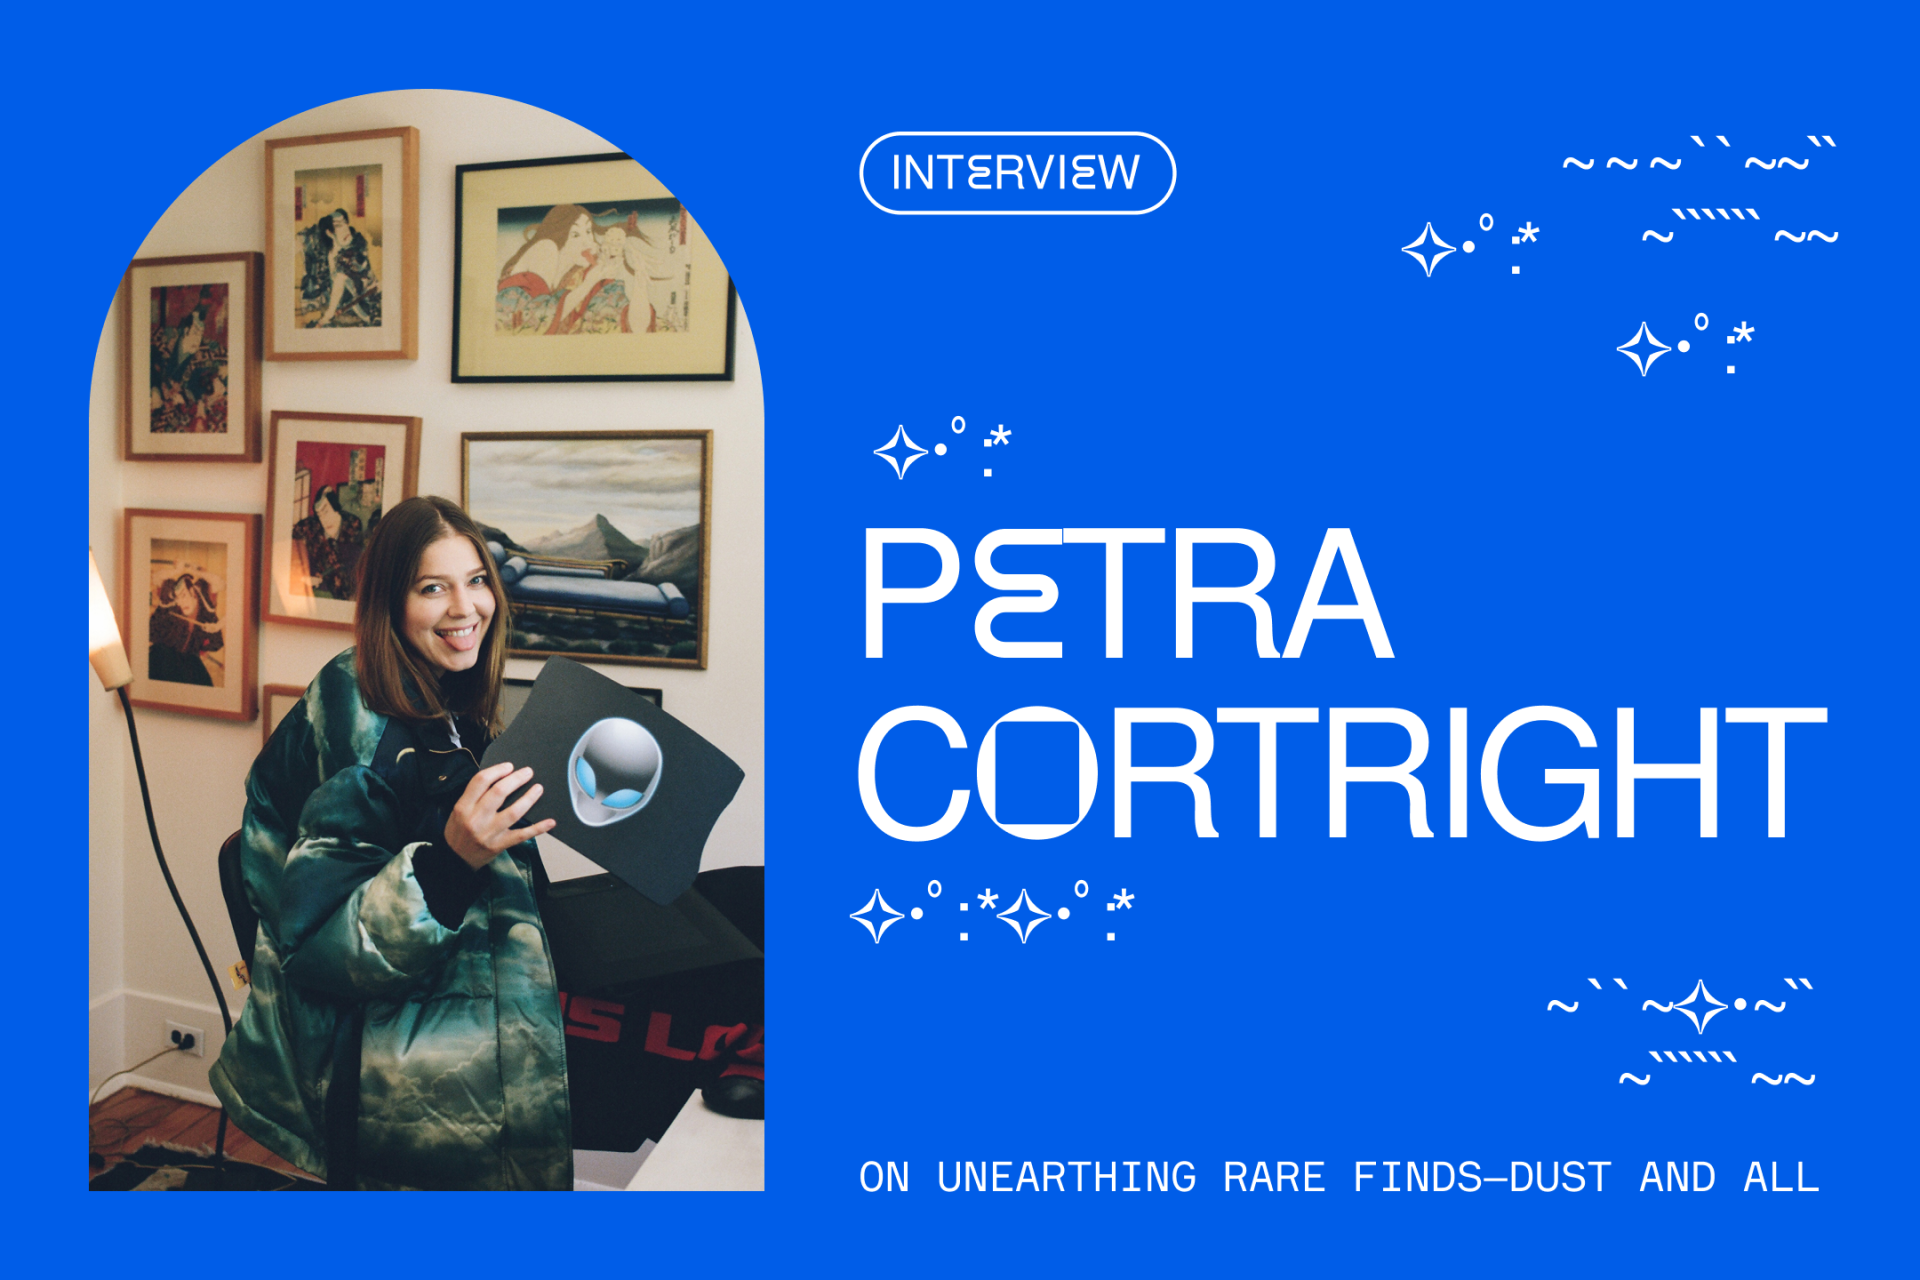 Petra Cortright on unearthing rare finds, dust and all.